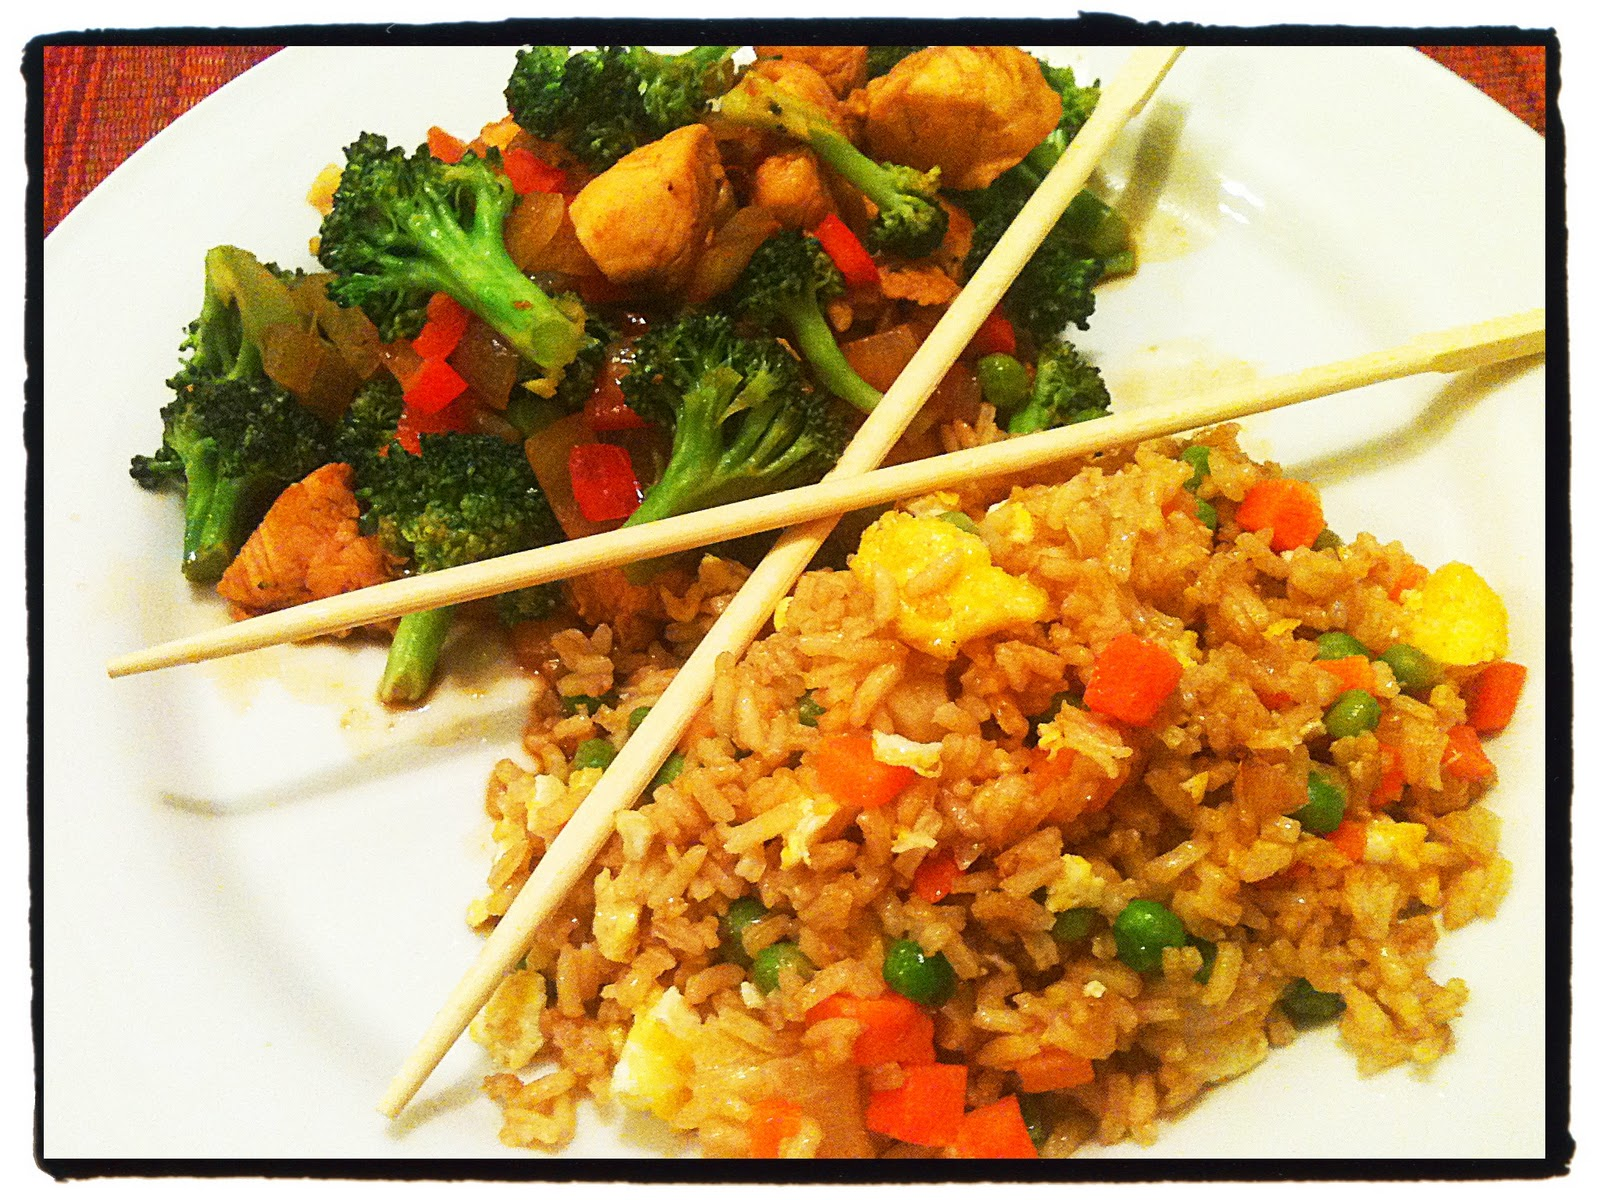 Delight's Bites: Chinese Fried Rice